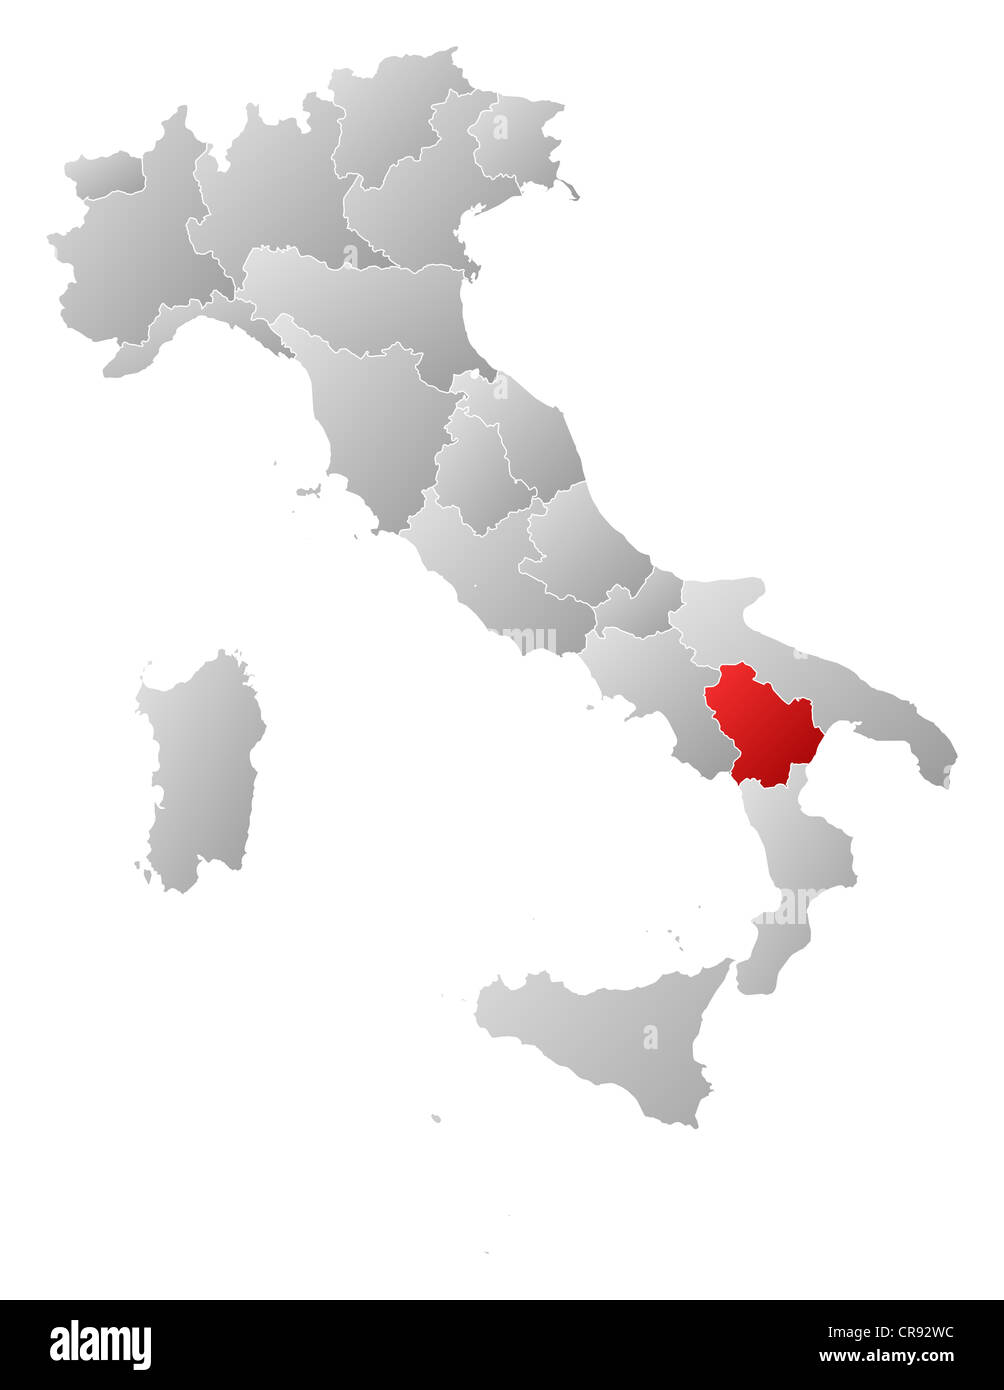 Political Map Of Italy With The Several Regions Where Basilicata Is